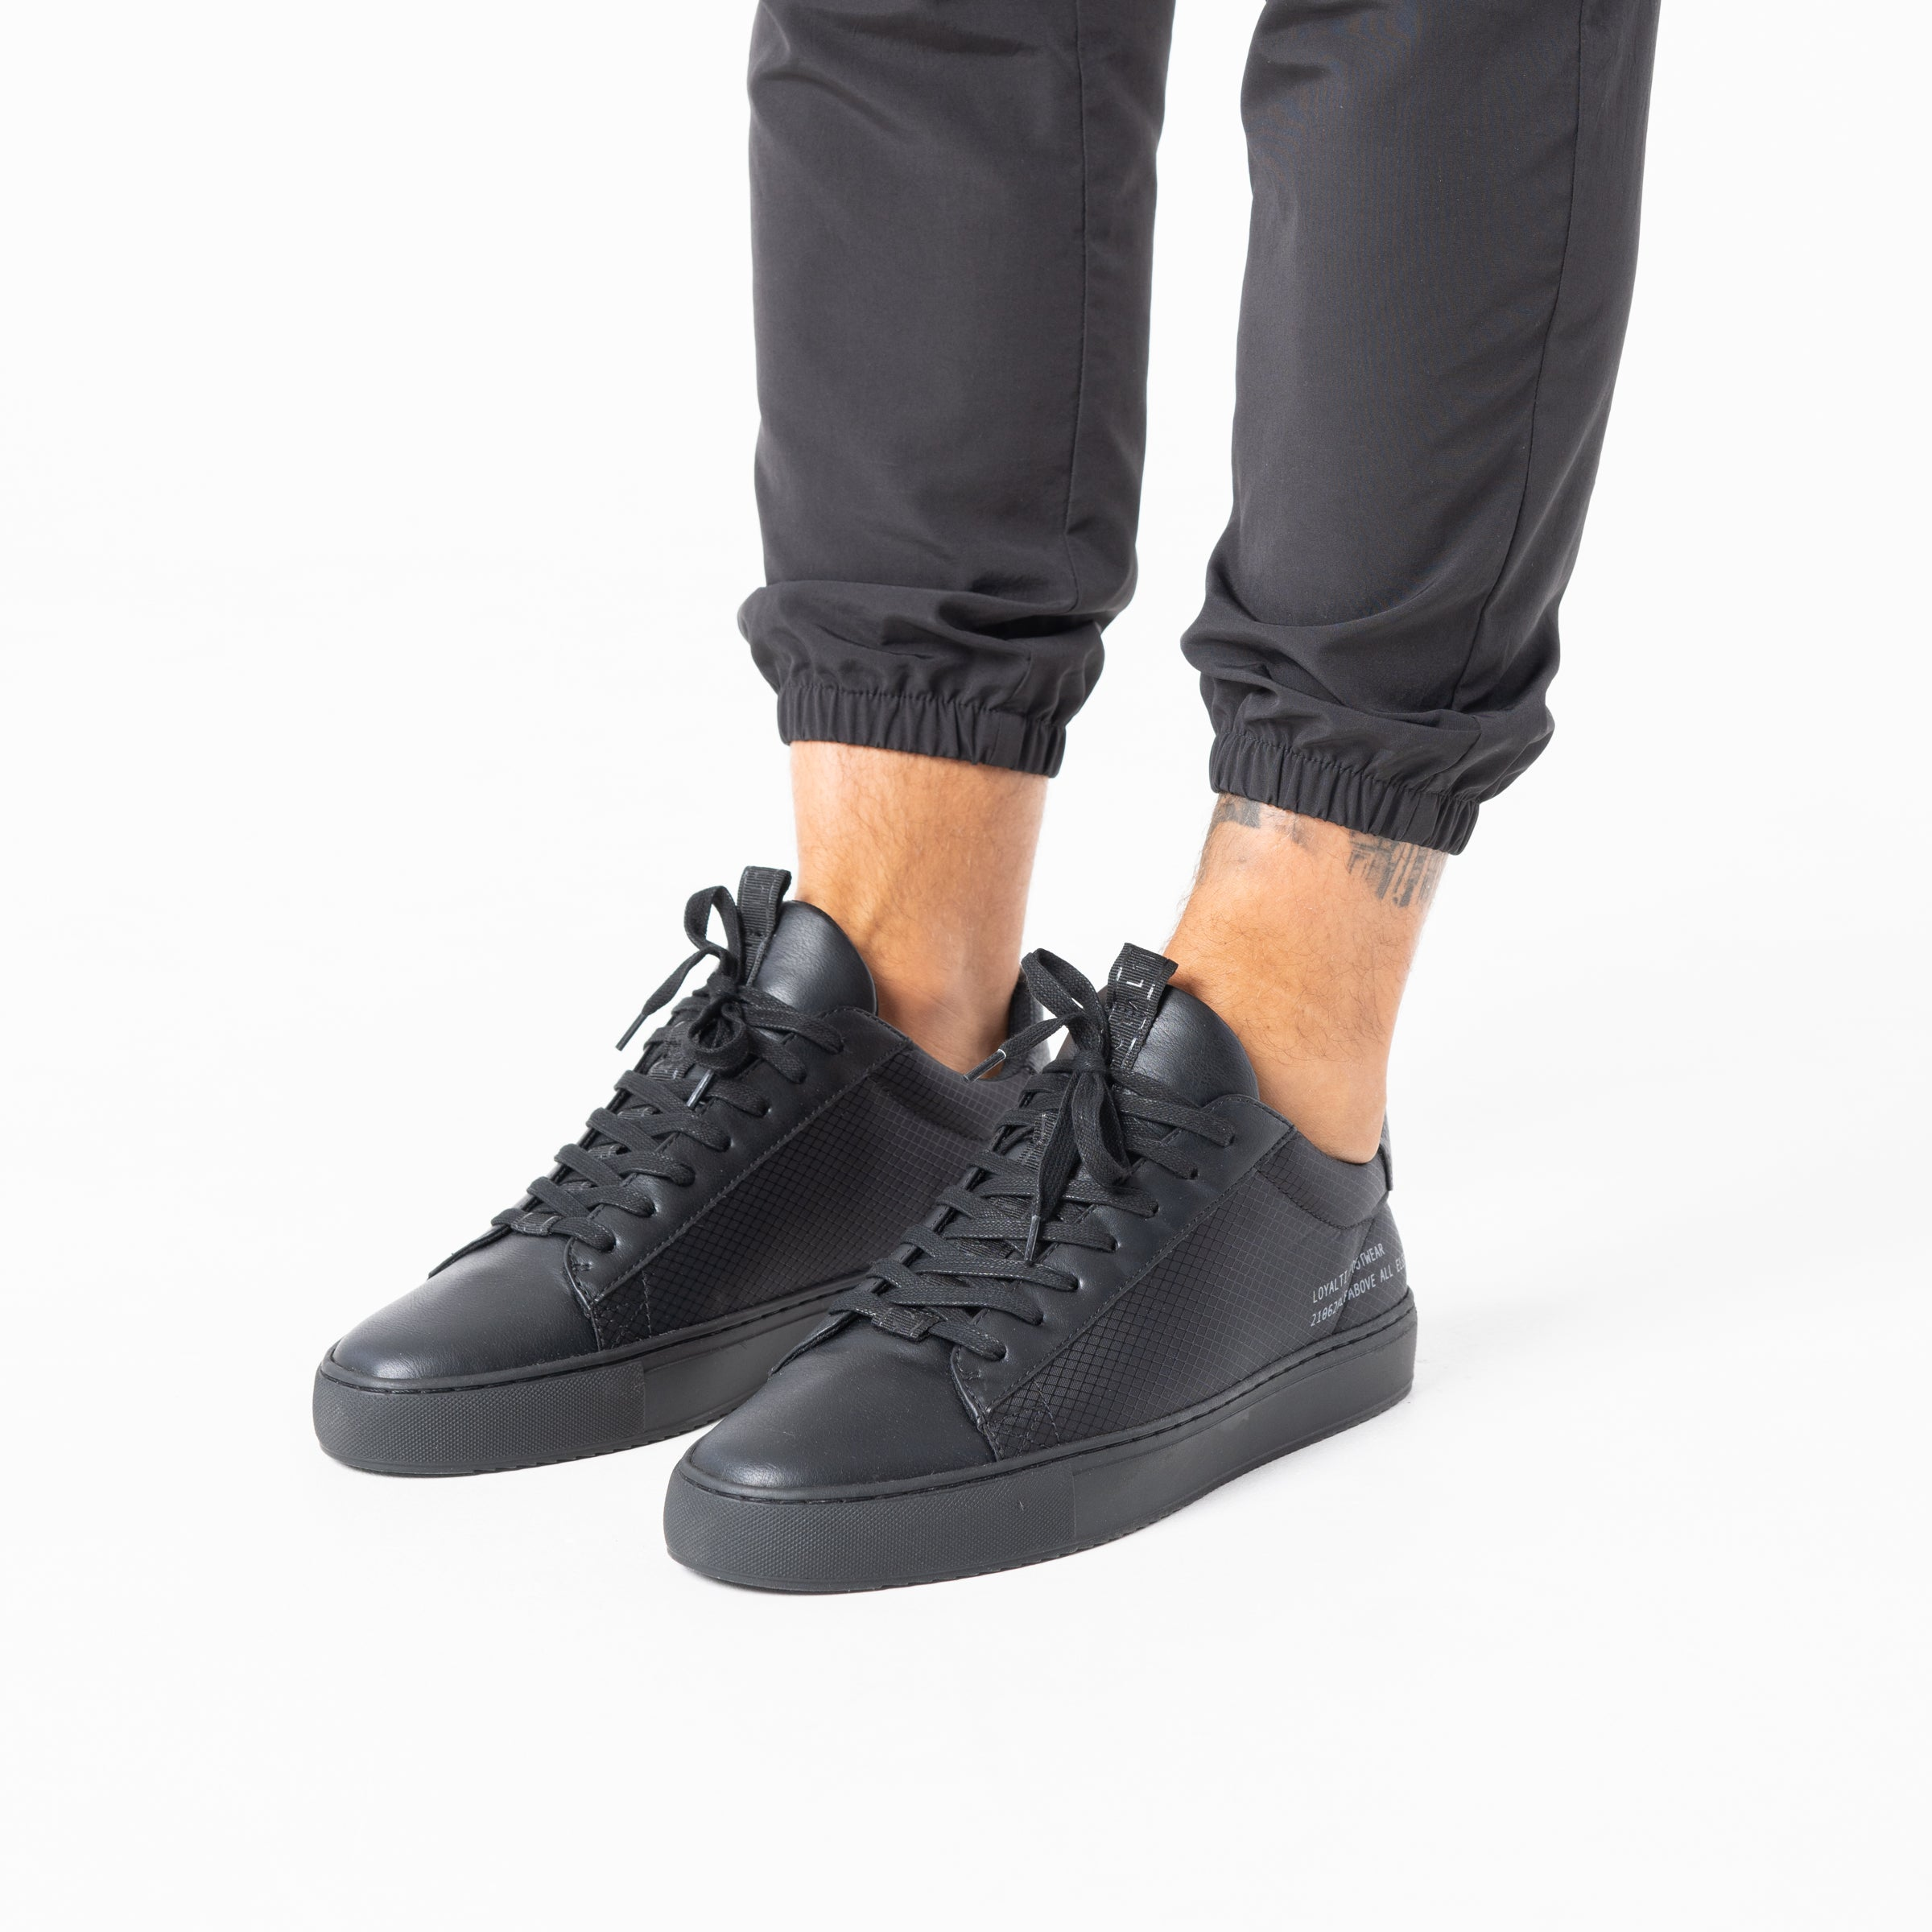 Heritage Trainer - Black